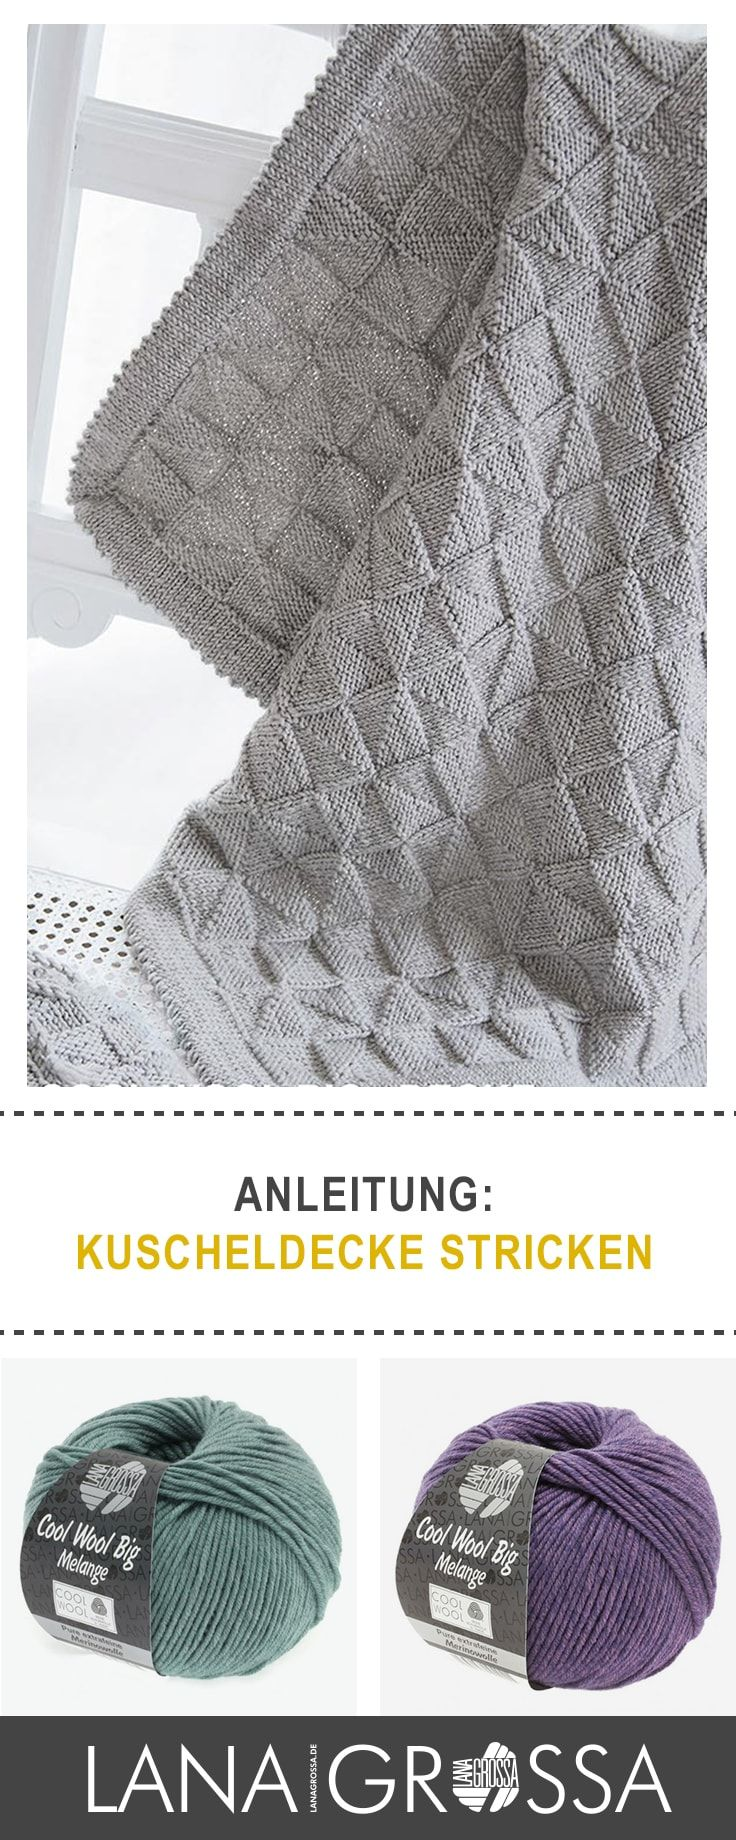 #Kostenlose Strickanleitung Kuscheldecke stricken / free knit pattern cozy knitted blanket via lanagrossa.de #knittingpatternstoys